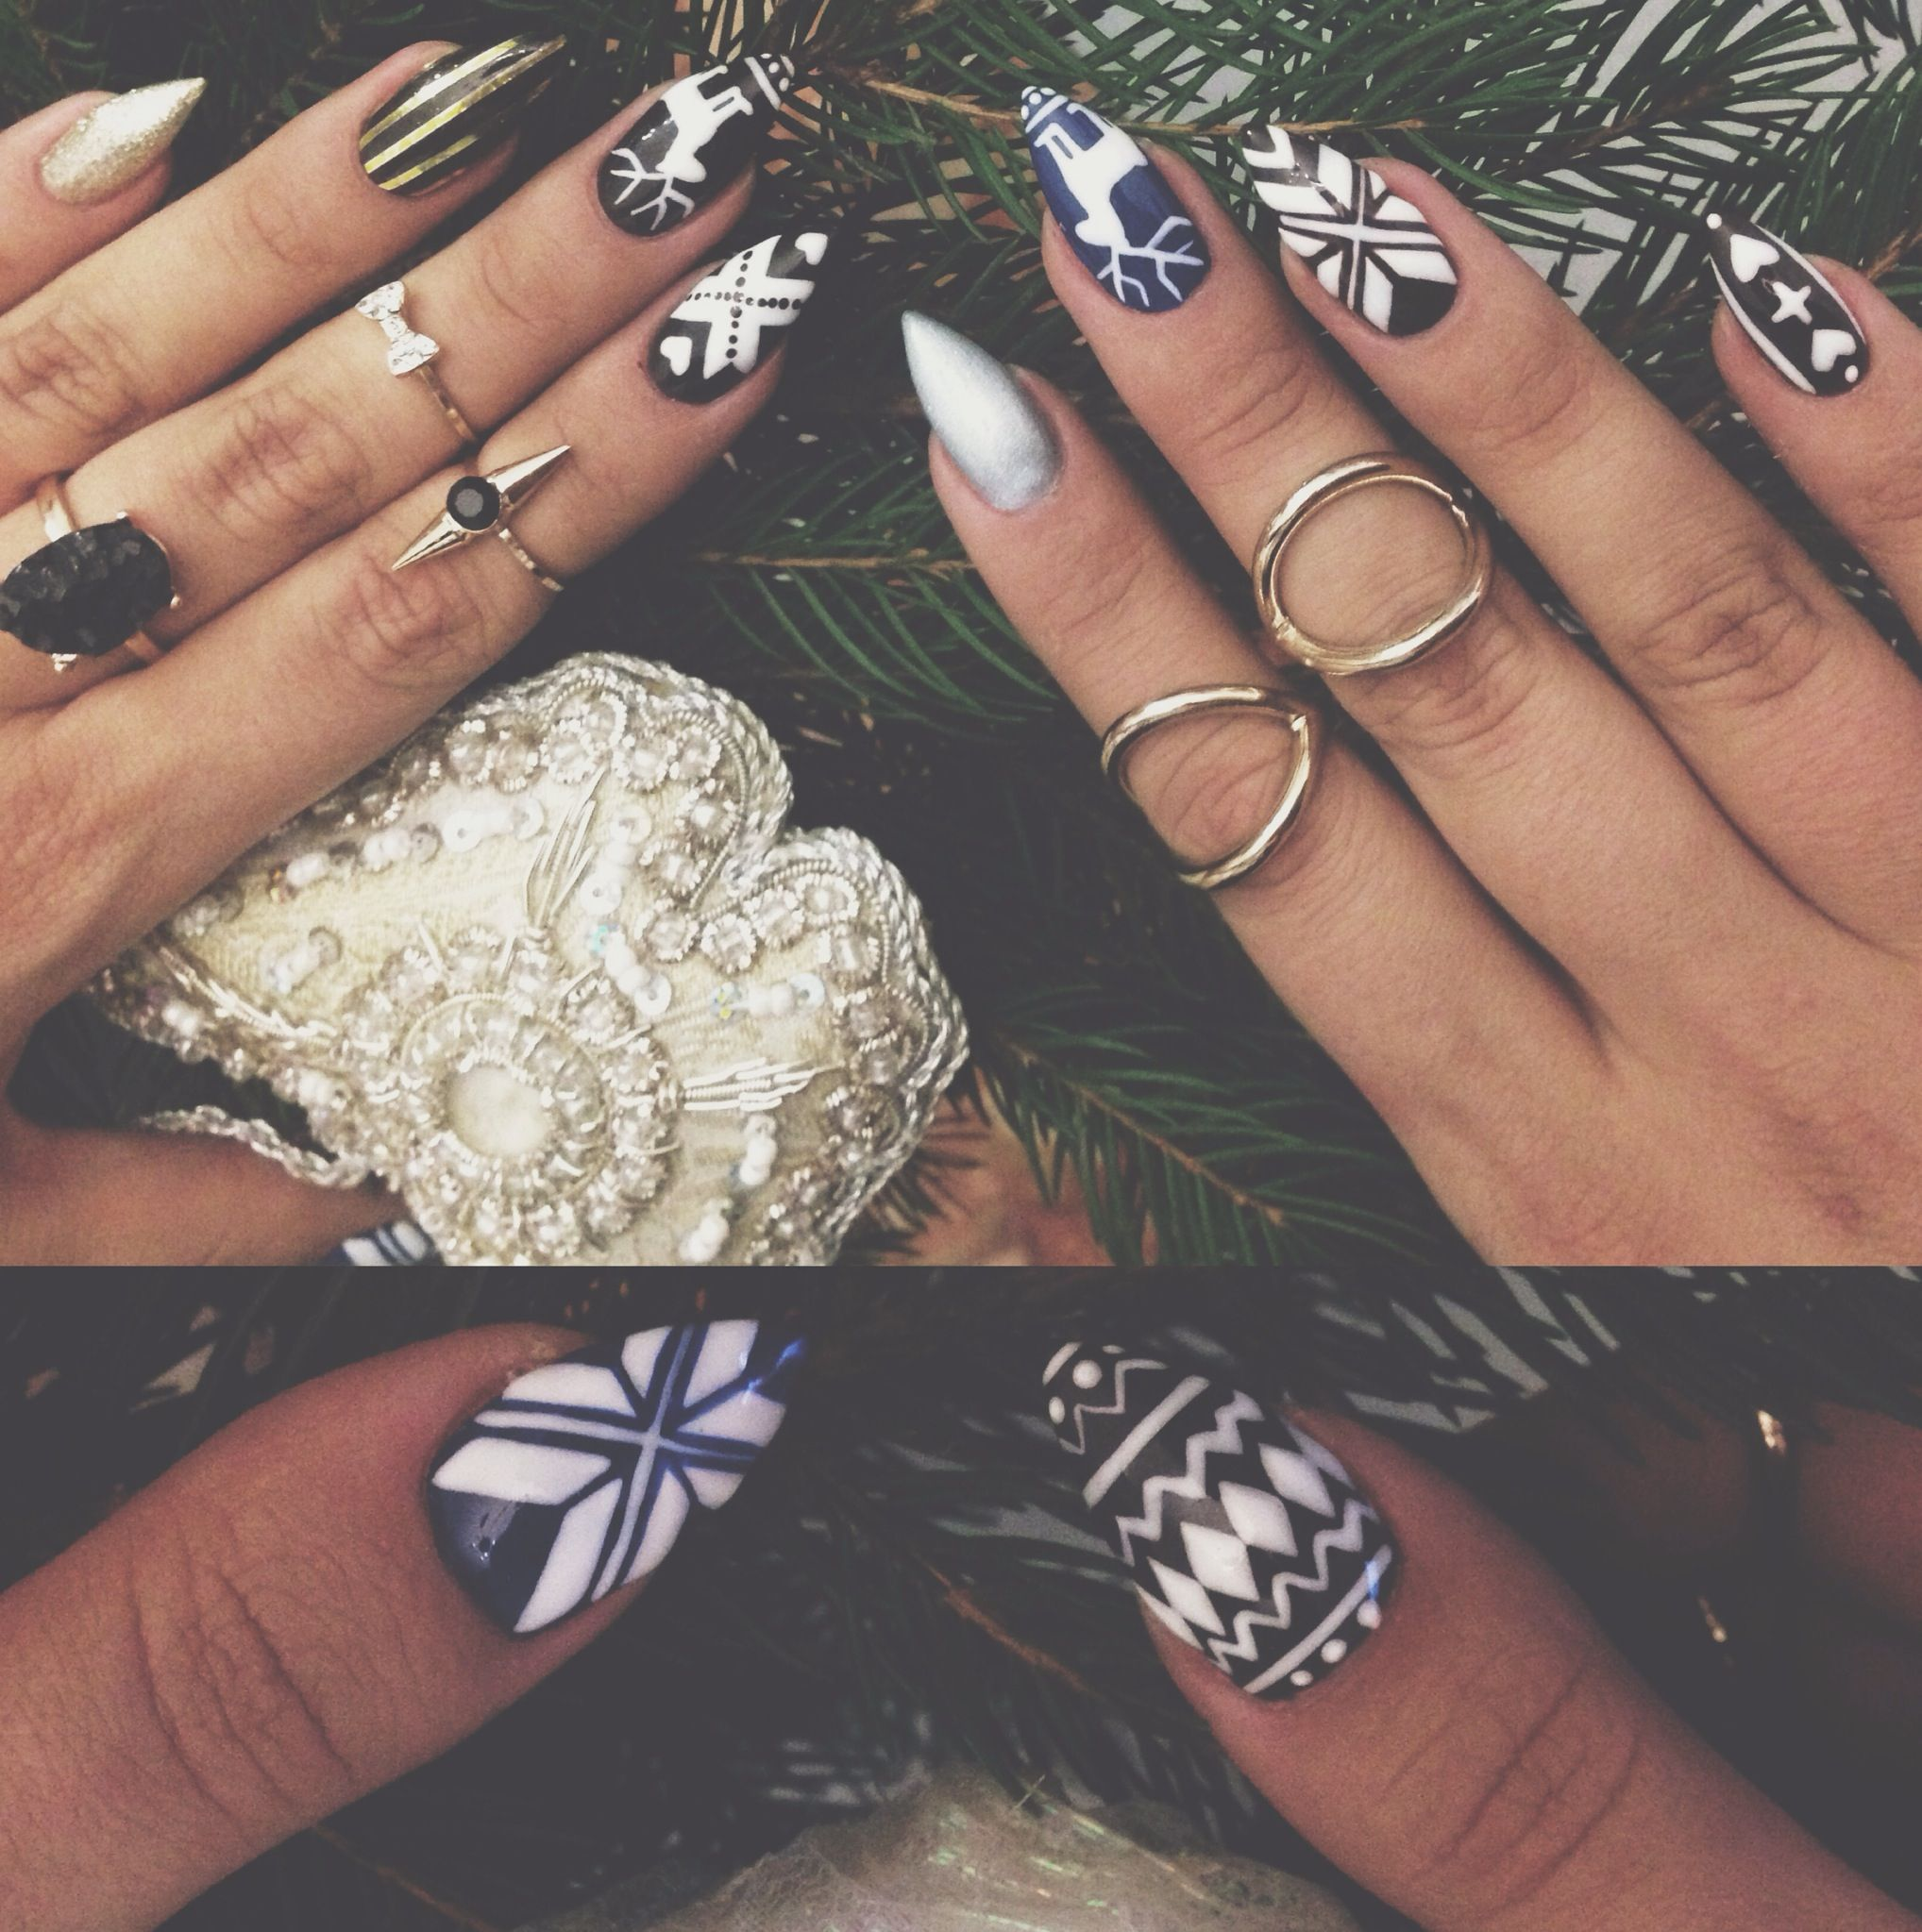 nail designs for fall 2014. stiletto nails by amelina anna, winter nail designs 2014, art for fall 2014